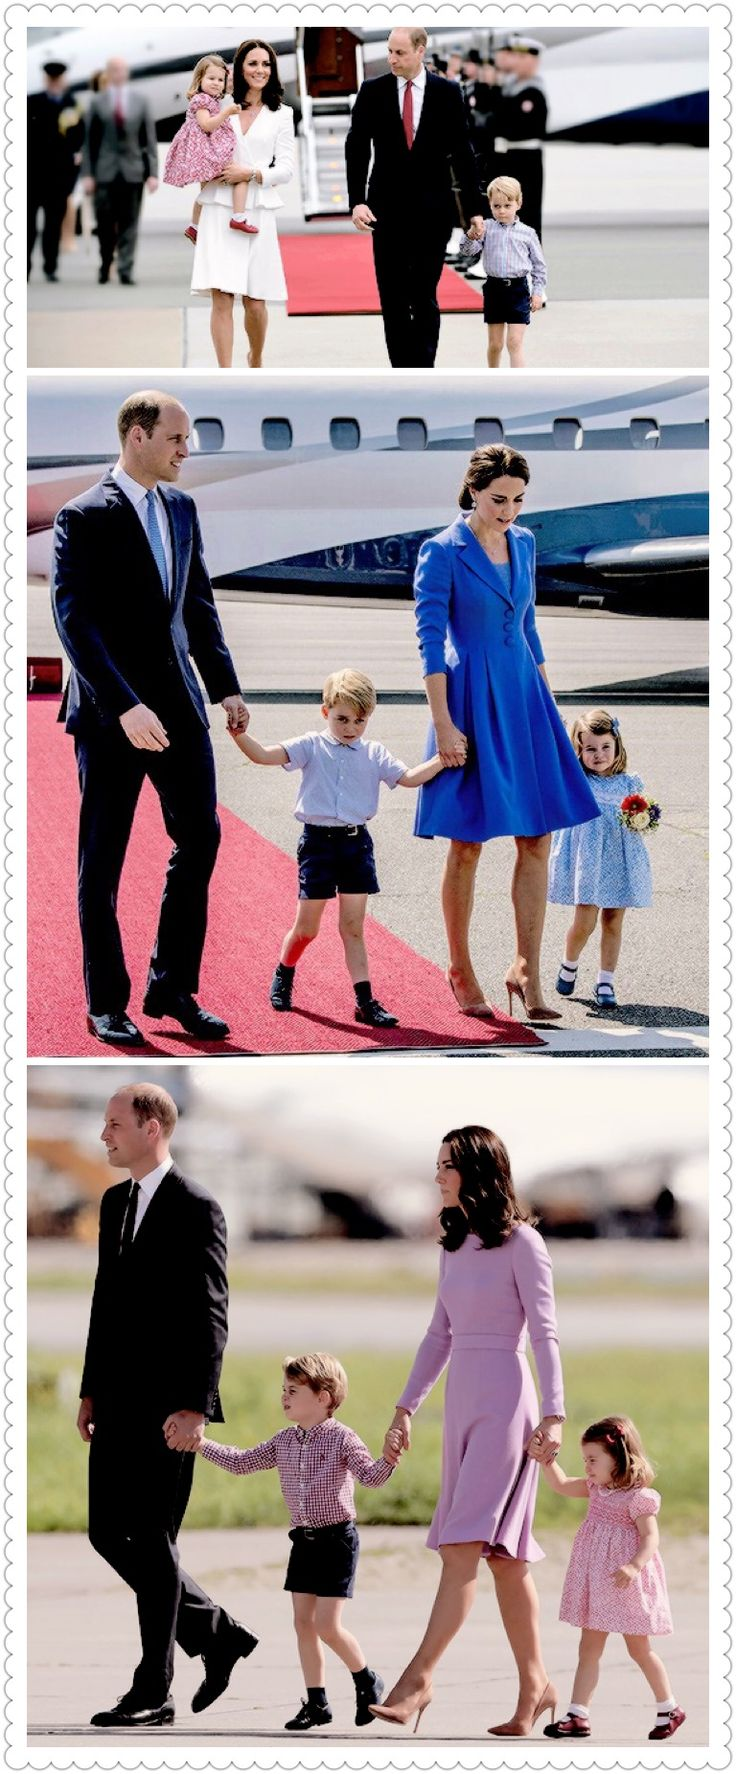 The Cambridge's Royal tour of Poland and Germany